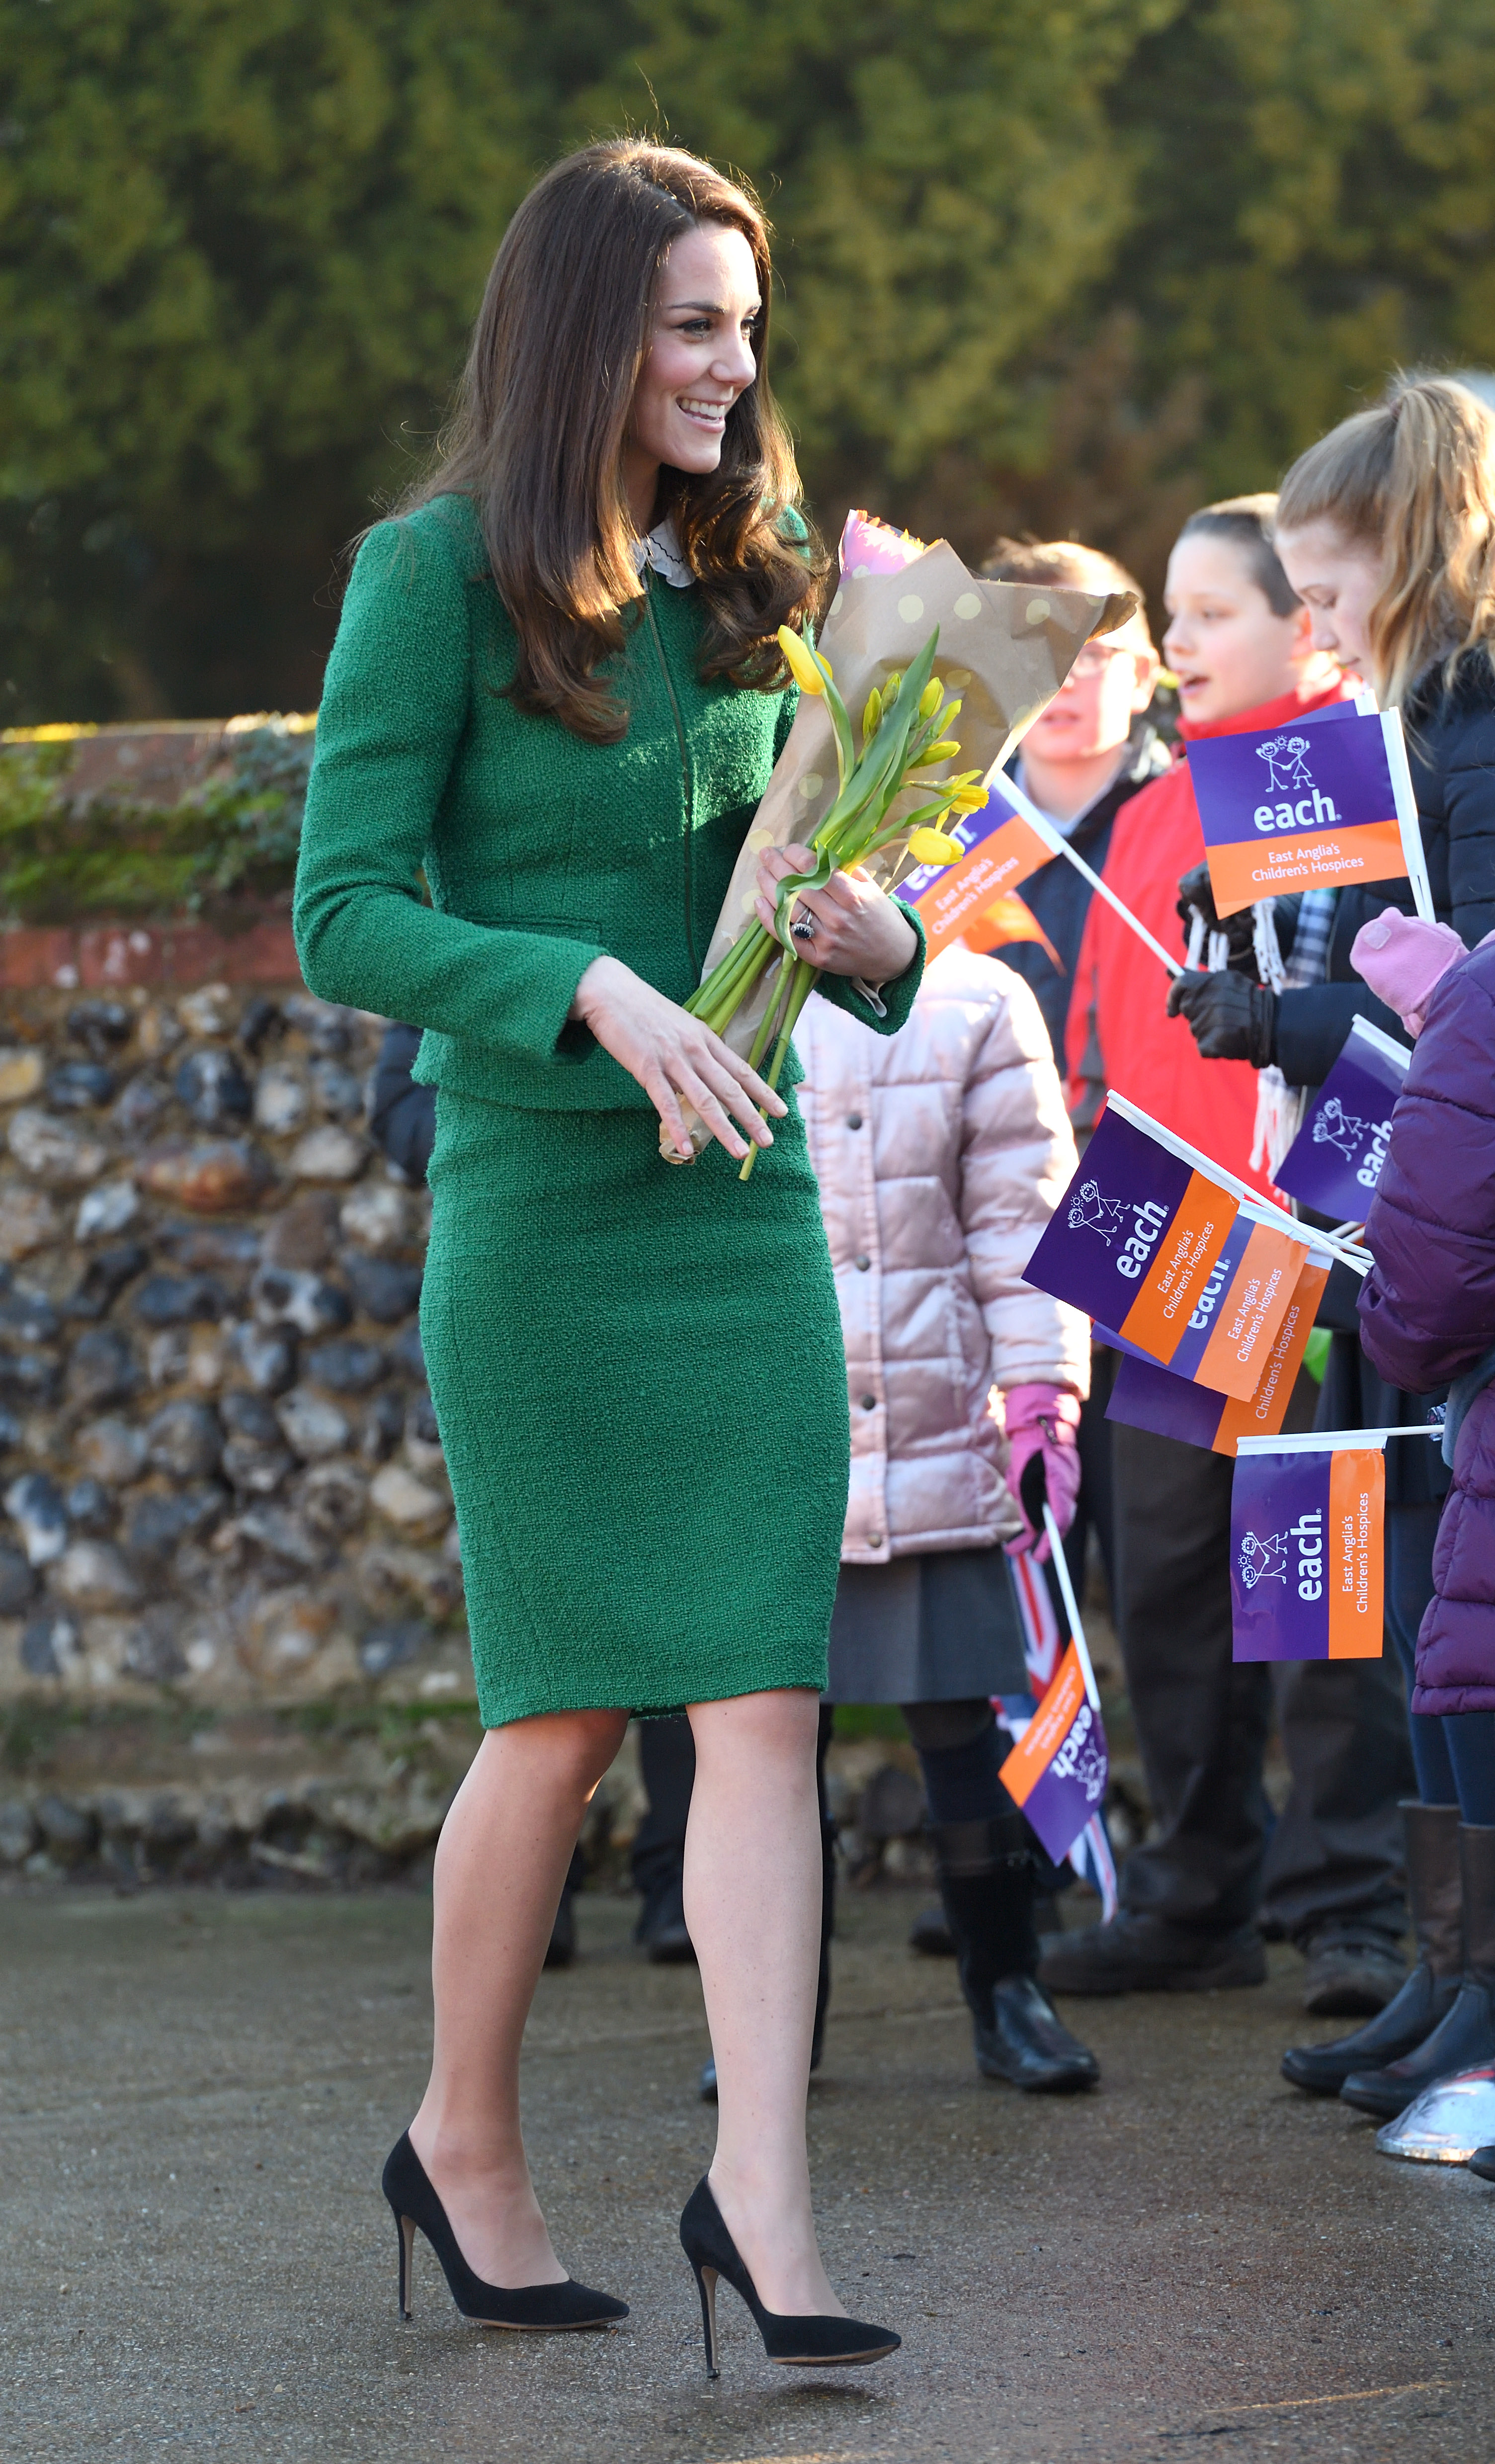 QUIDENHAM, NORFOLK - JANUARY 24:  Catherine, Duchess of Cambridge arrives to receive an update on The Nook Appeal at EACH on January 24, 2017 in Quidenham, Norfolk.  HRH is Royal Patron of EACH (East Anglia's Children's Hospices) and launched The Nook Appeal in 2014.  (Photo by Karwai Tang/WireImage)